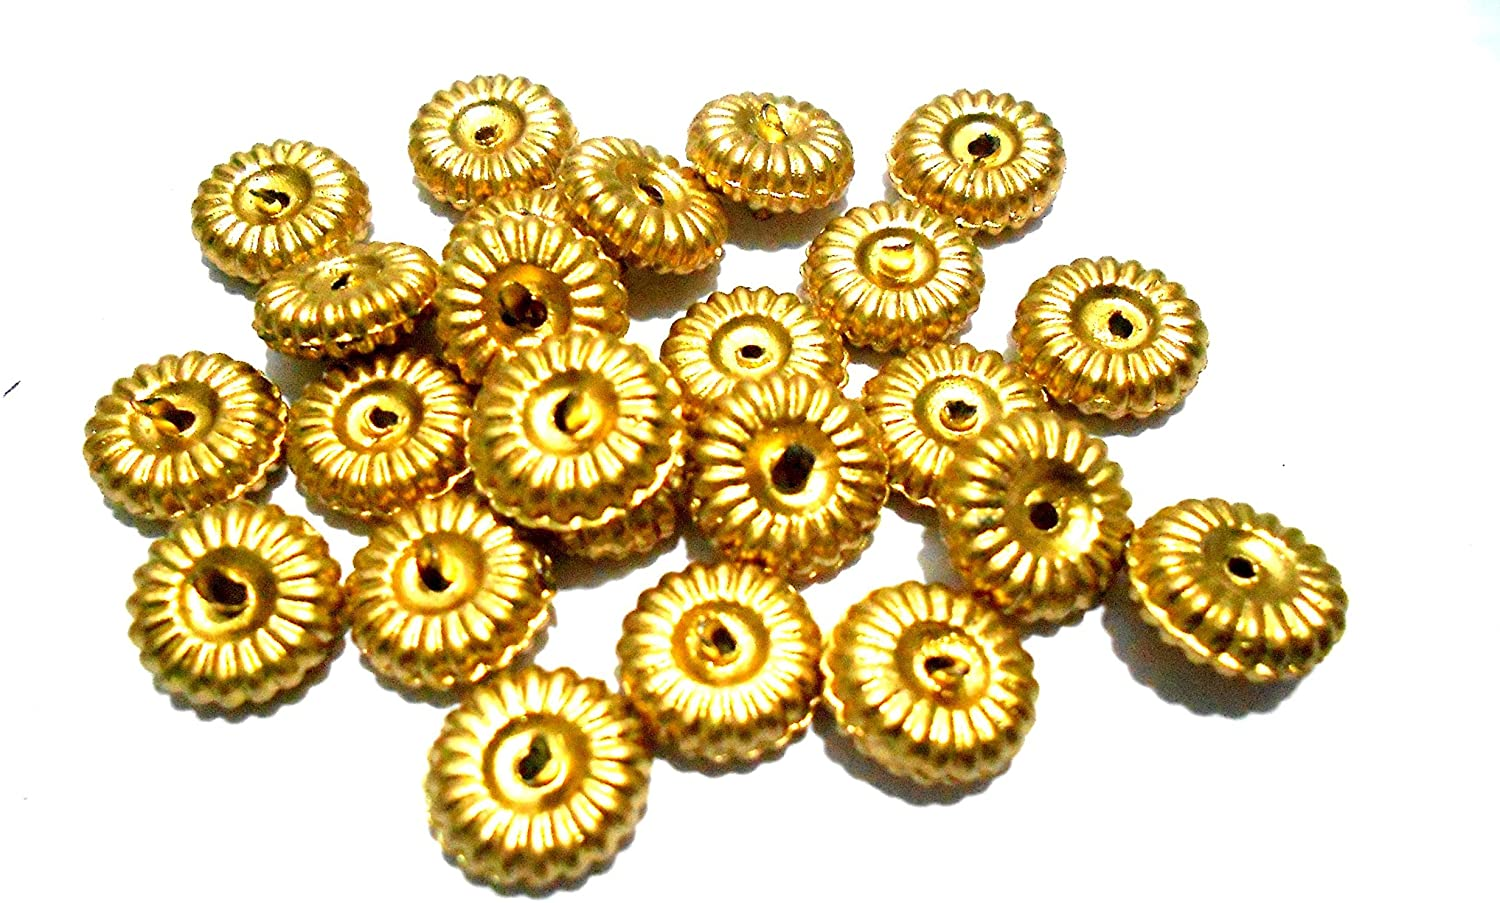 GOELX Dull Gold Acrylic Disc Beads 8Mm for Jewelry Making/Crafts